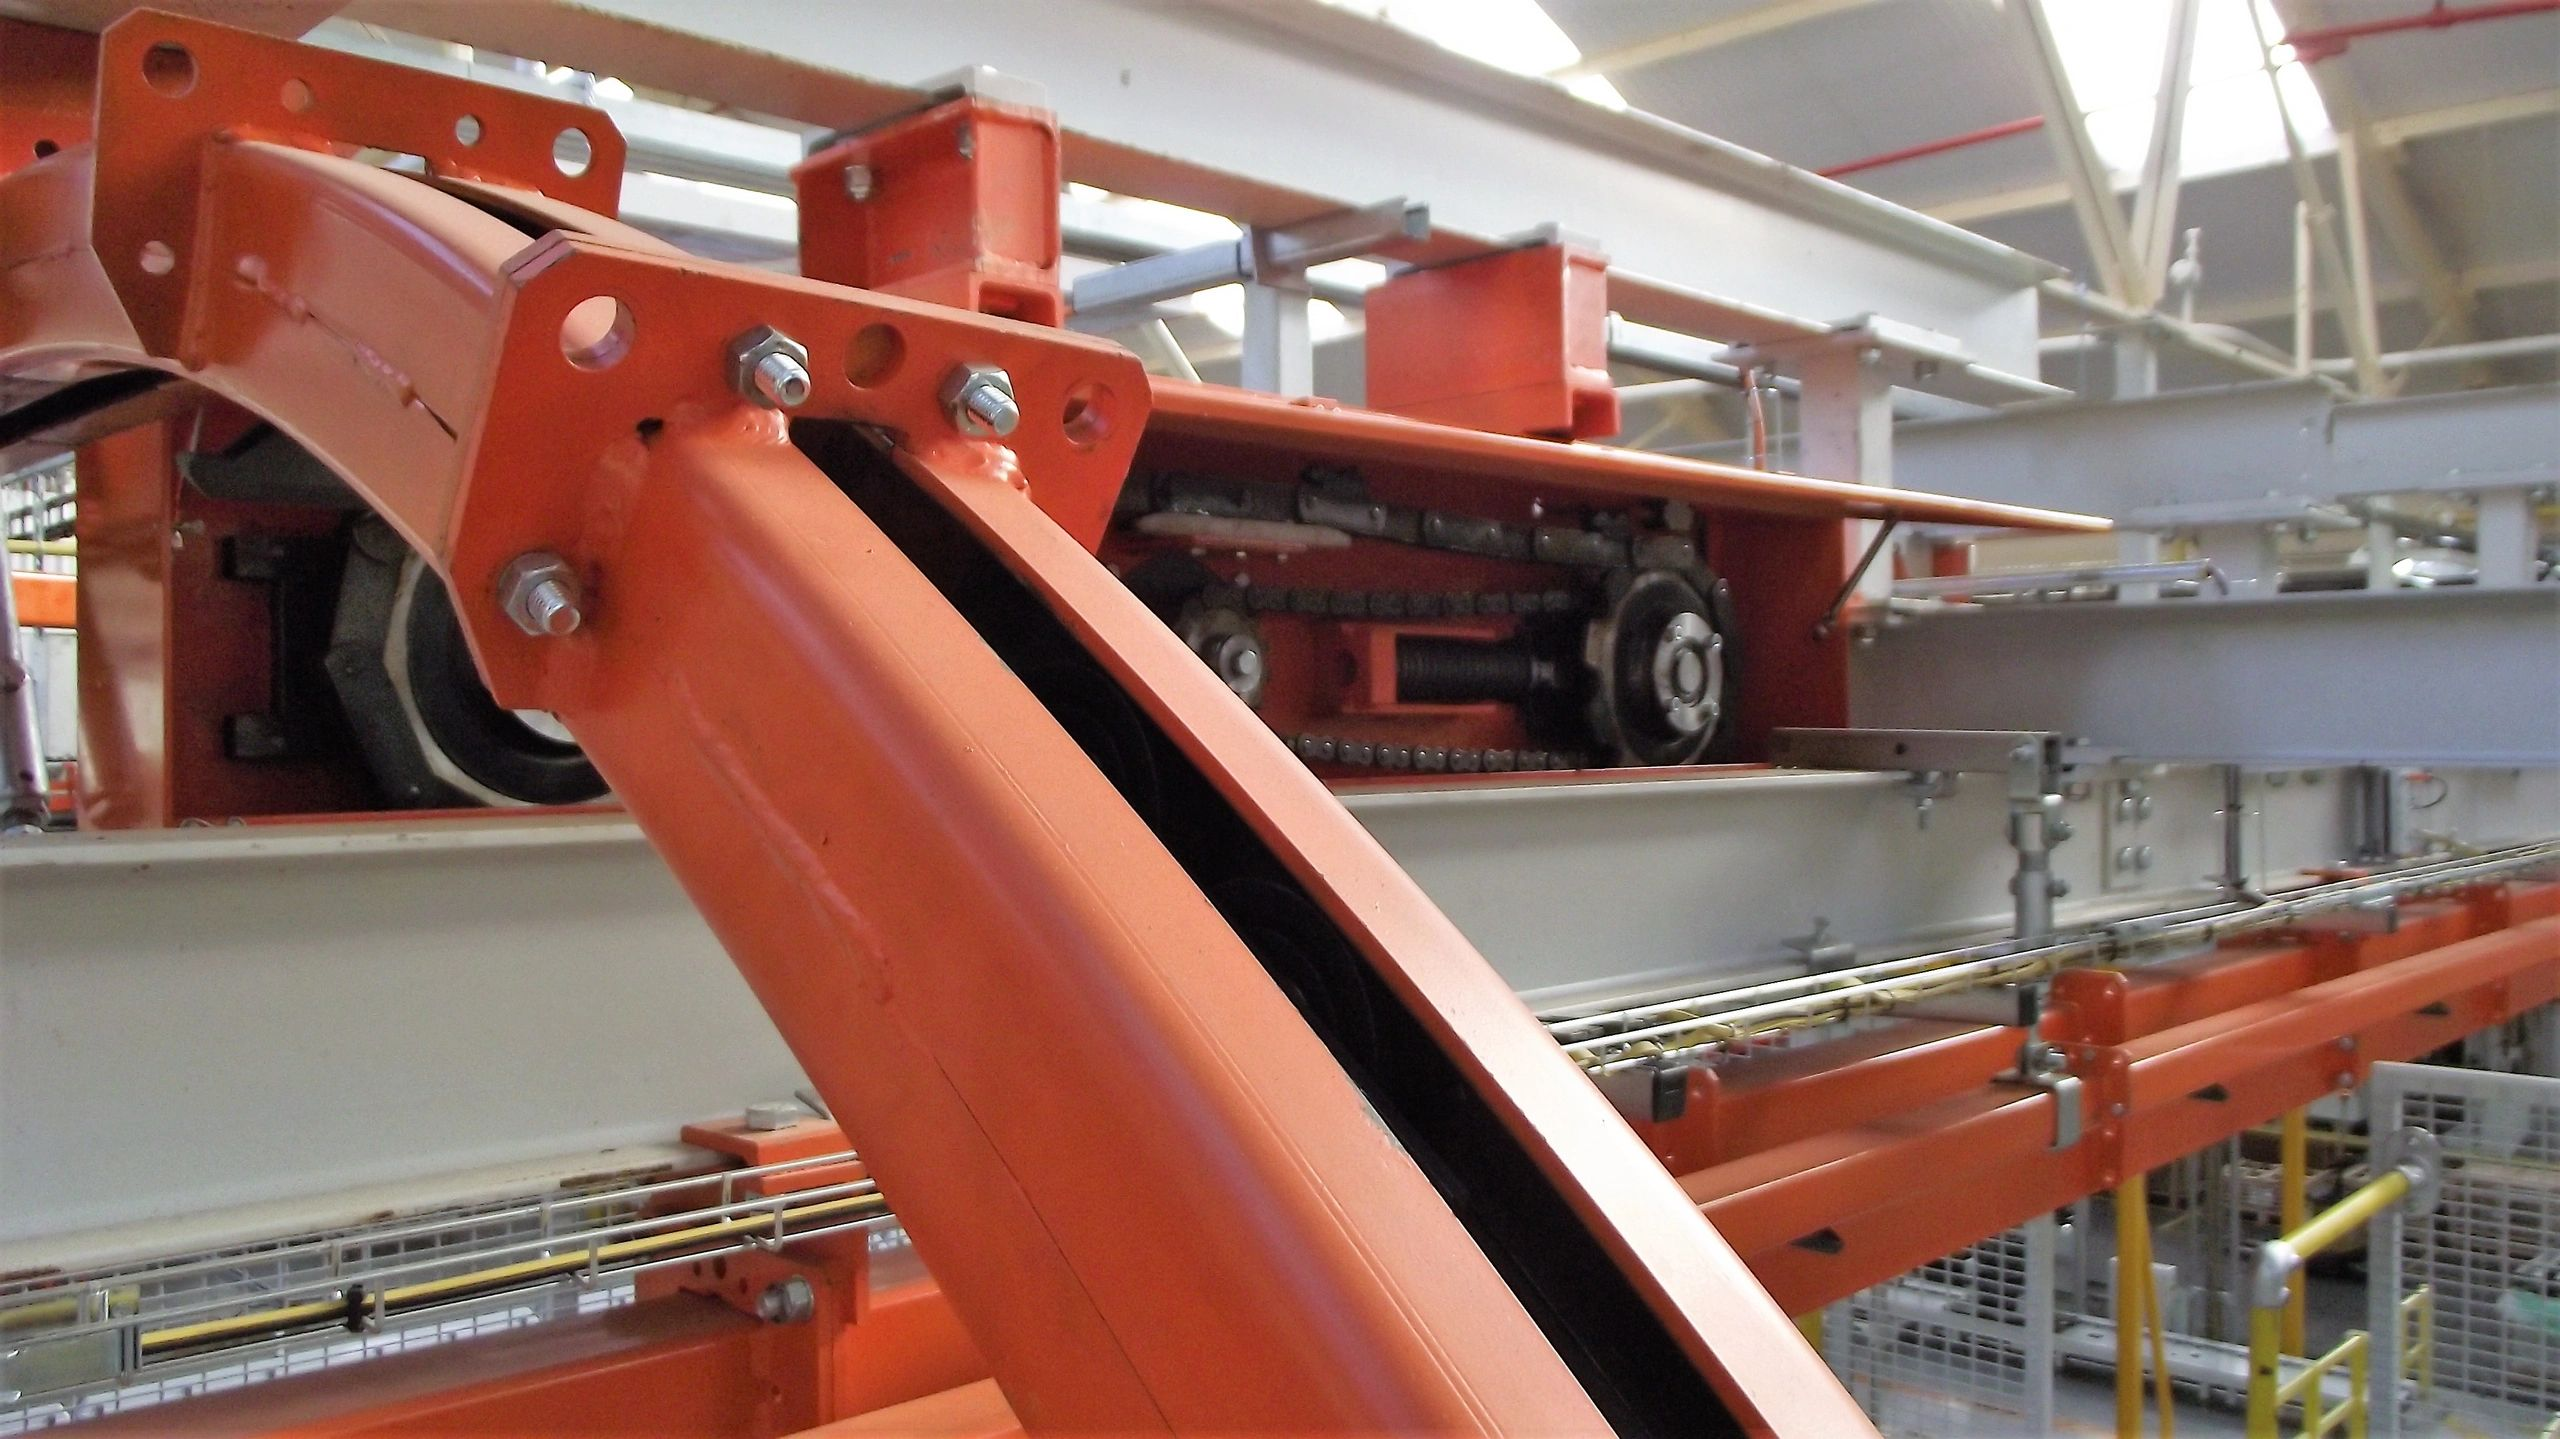 Power and free overhead conveyor system